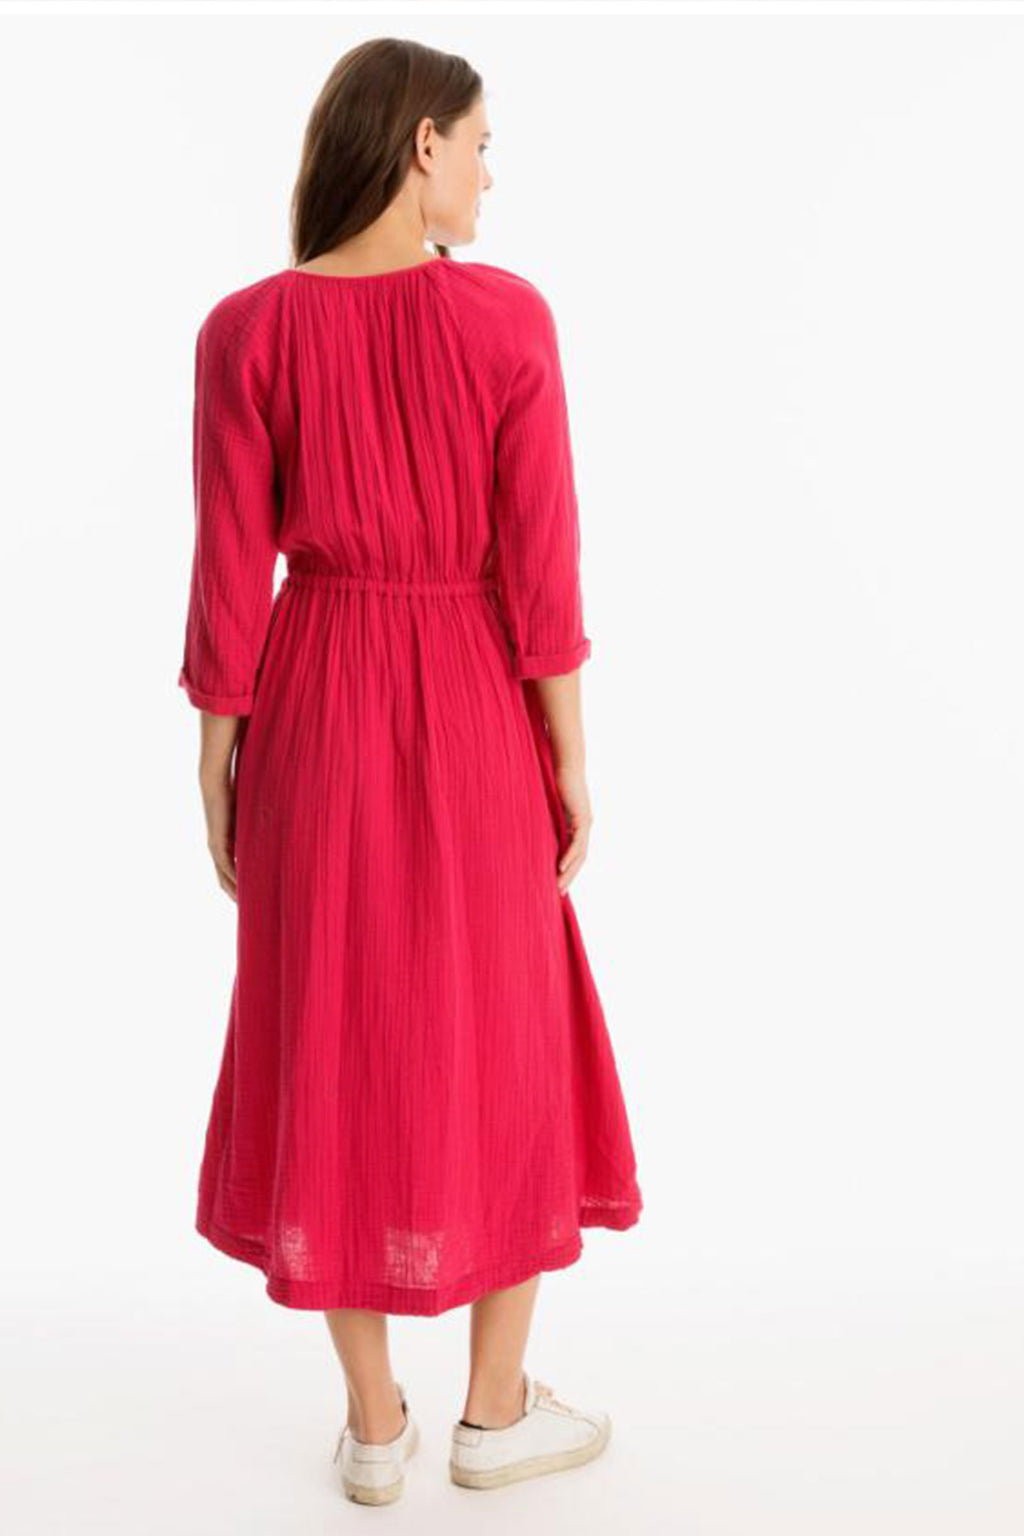 Xirena Cotton Darren Dress In Red Berry